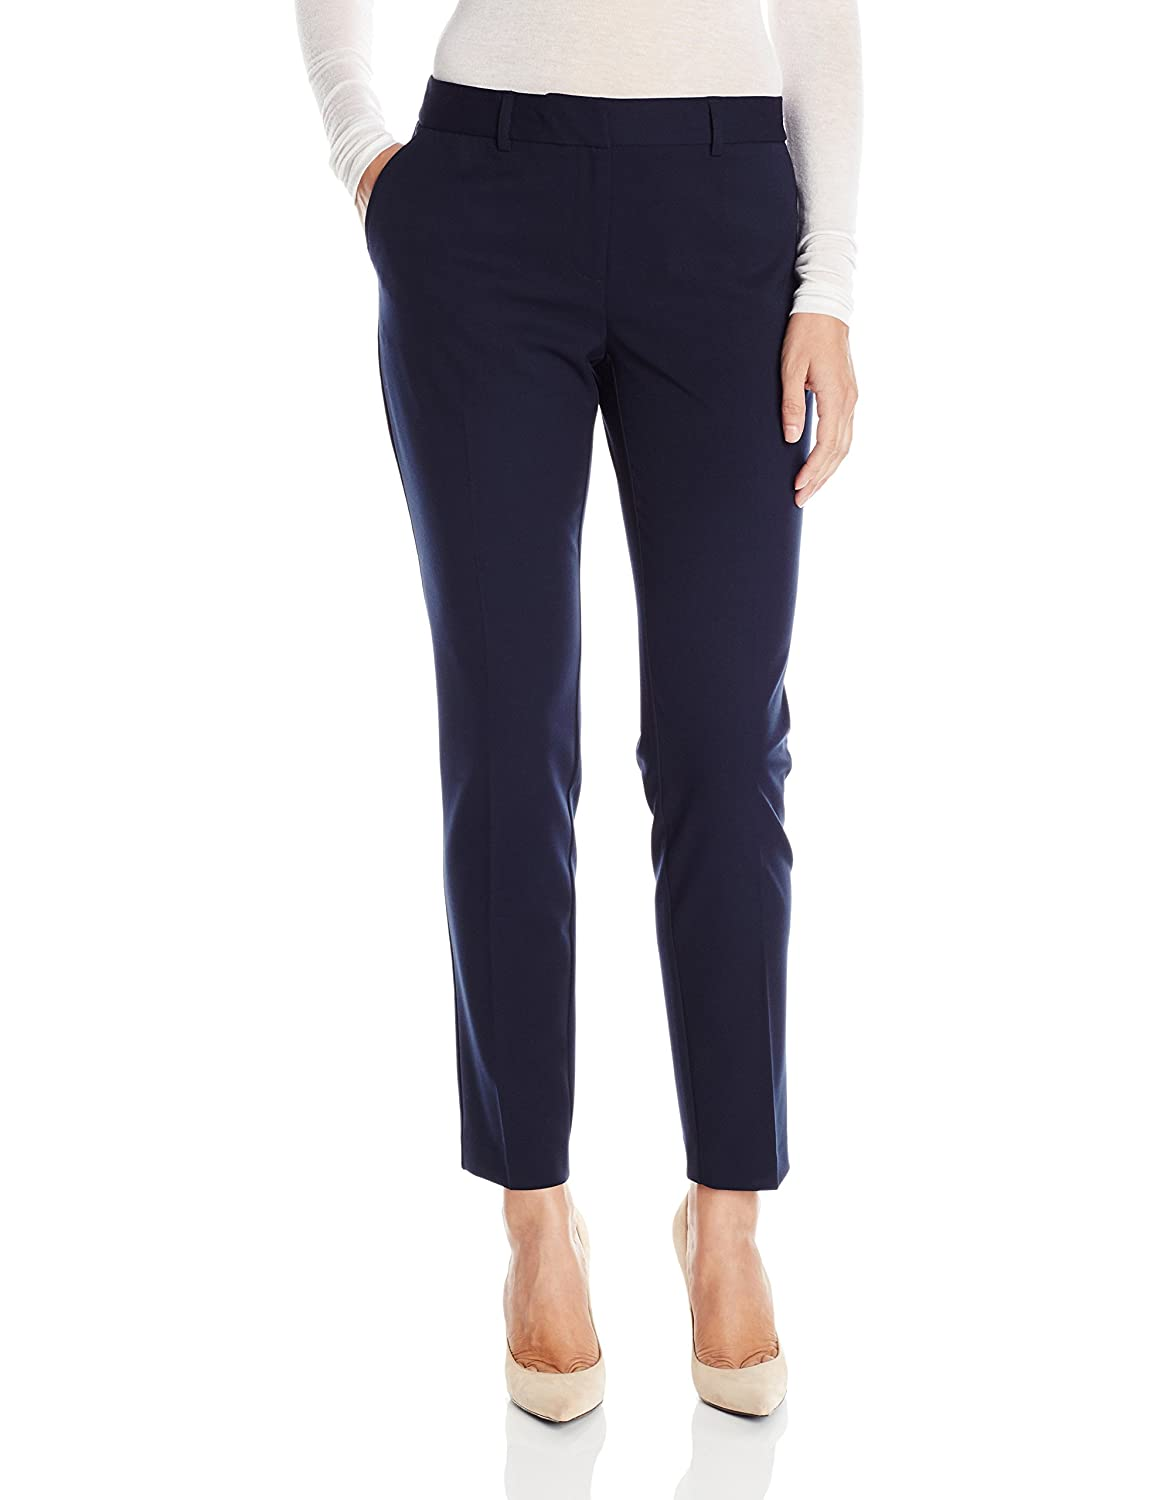 Jones New York Womens Plus-Size Plus Size Grace Full Length Pant Jones New York Women' s Sportswear JMWEKG7011